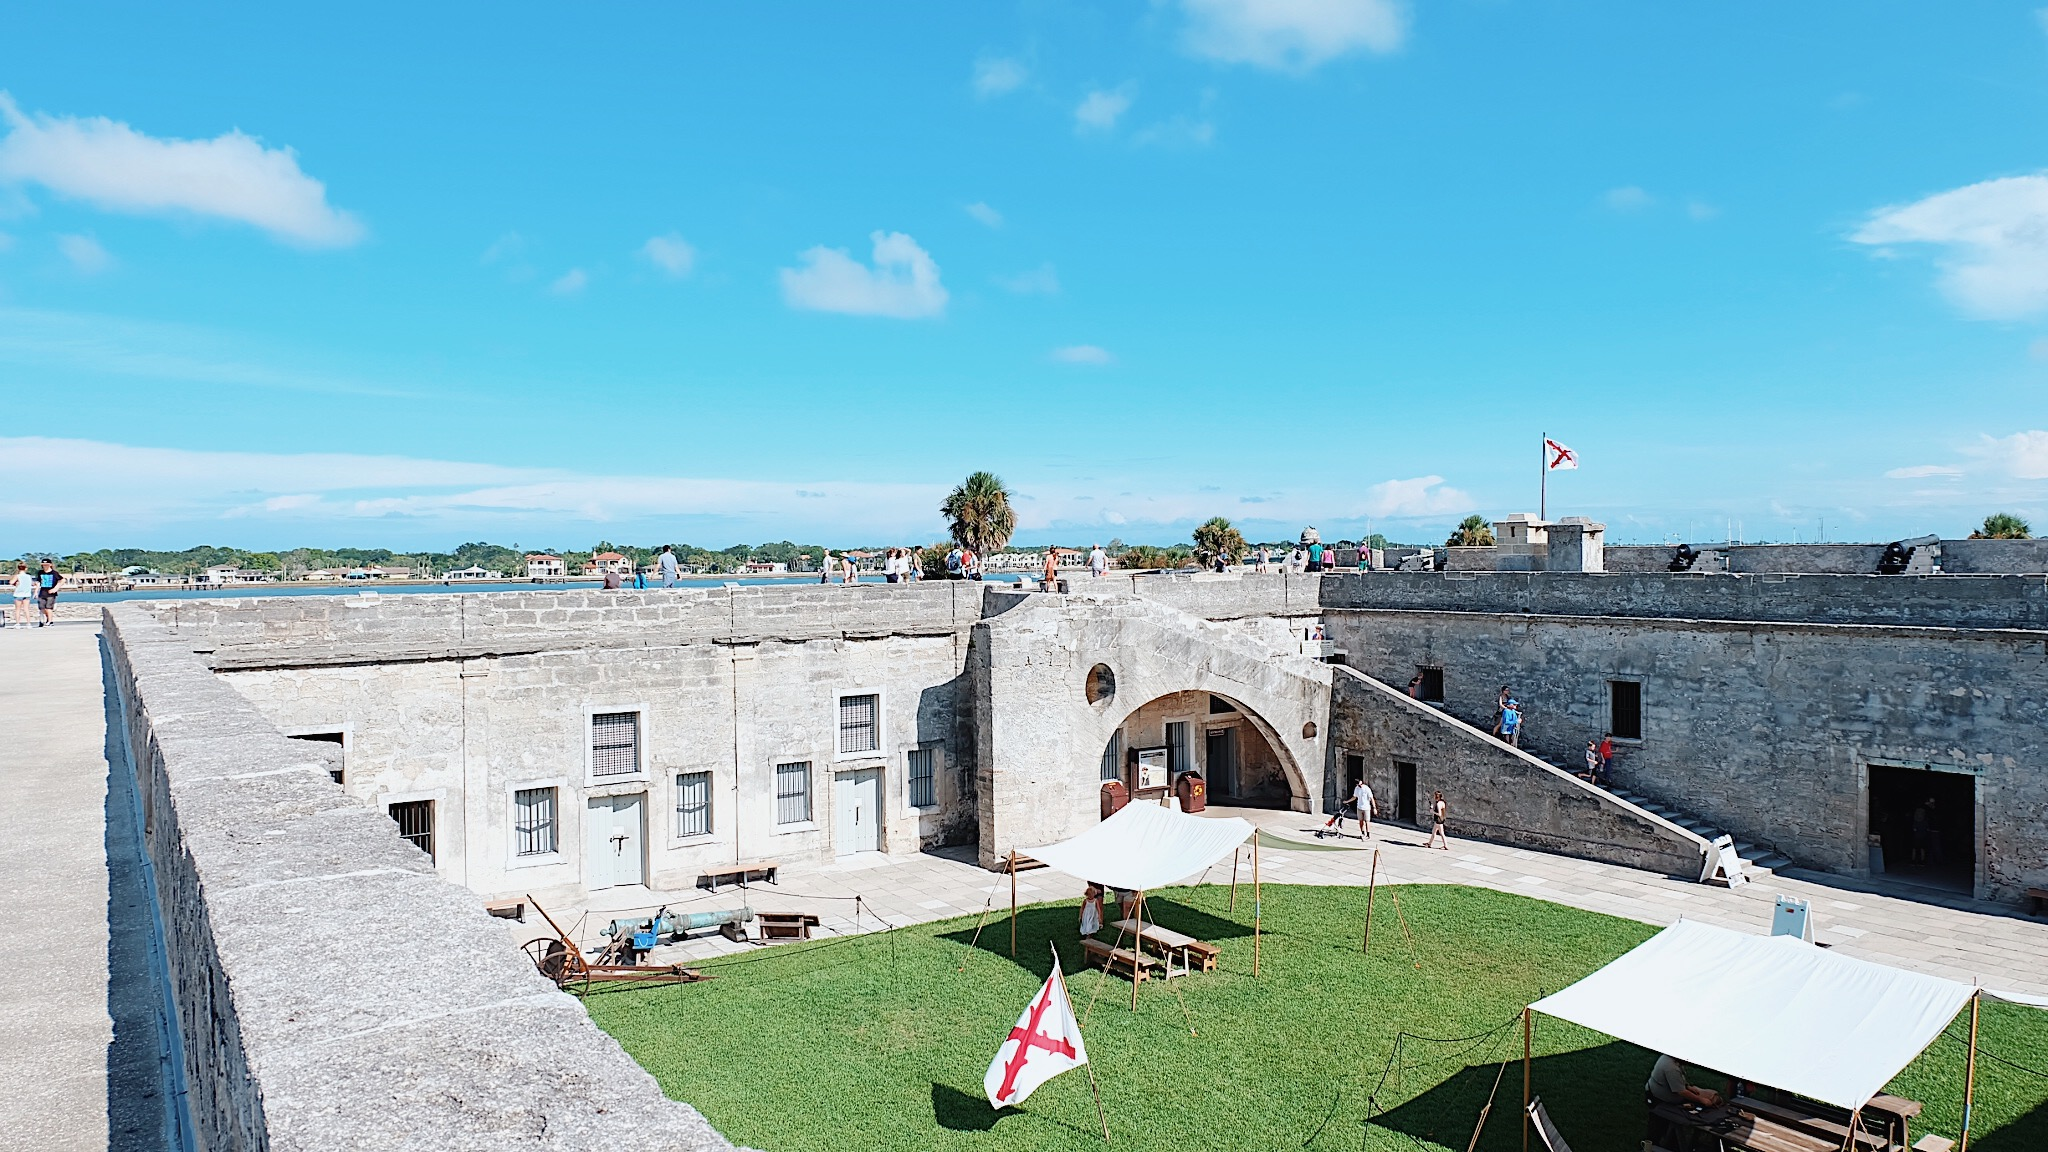 The Castillo de San Marcos is the oldest masonry fort in the continental United States. Located on the western shore of Matanzas Bay in the city of St. Augustine, Florida, the fort was designed by the Spanish engineer Ignacio Daza.